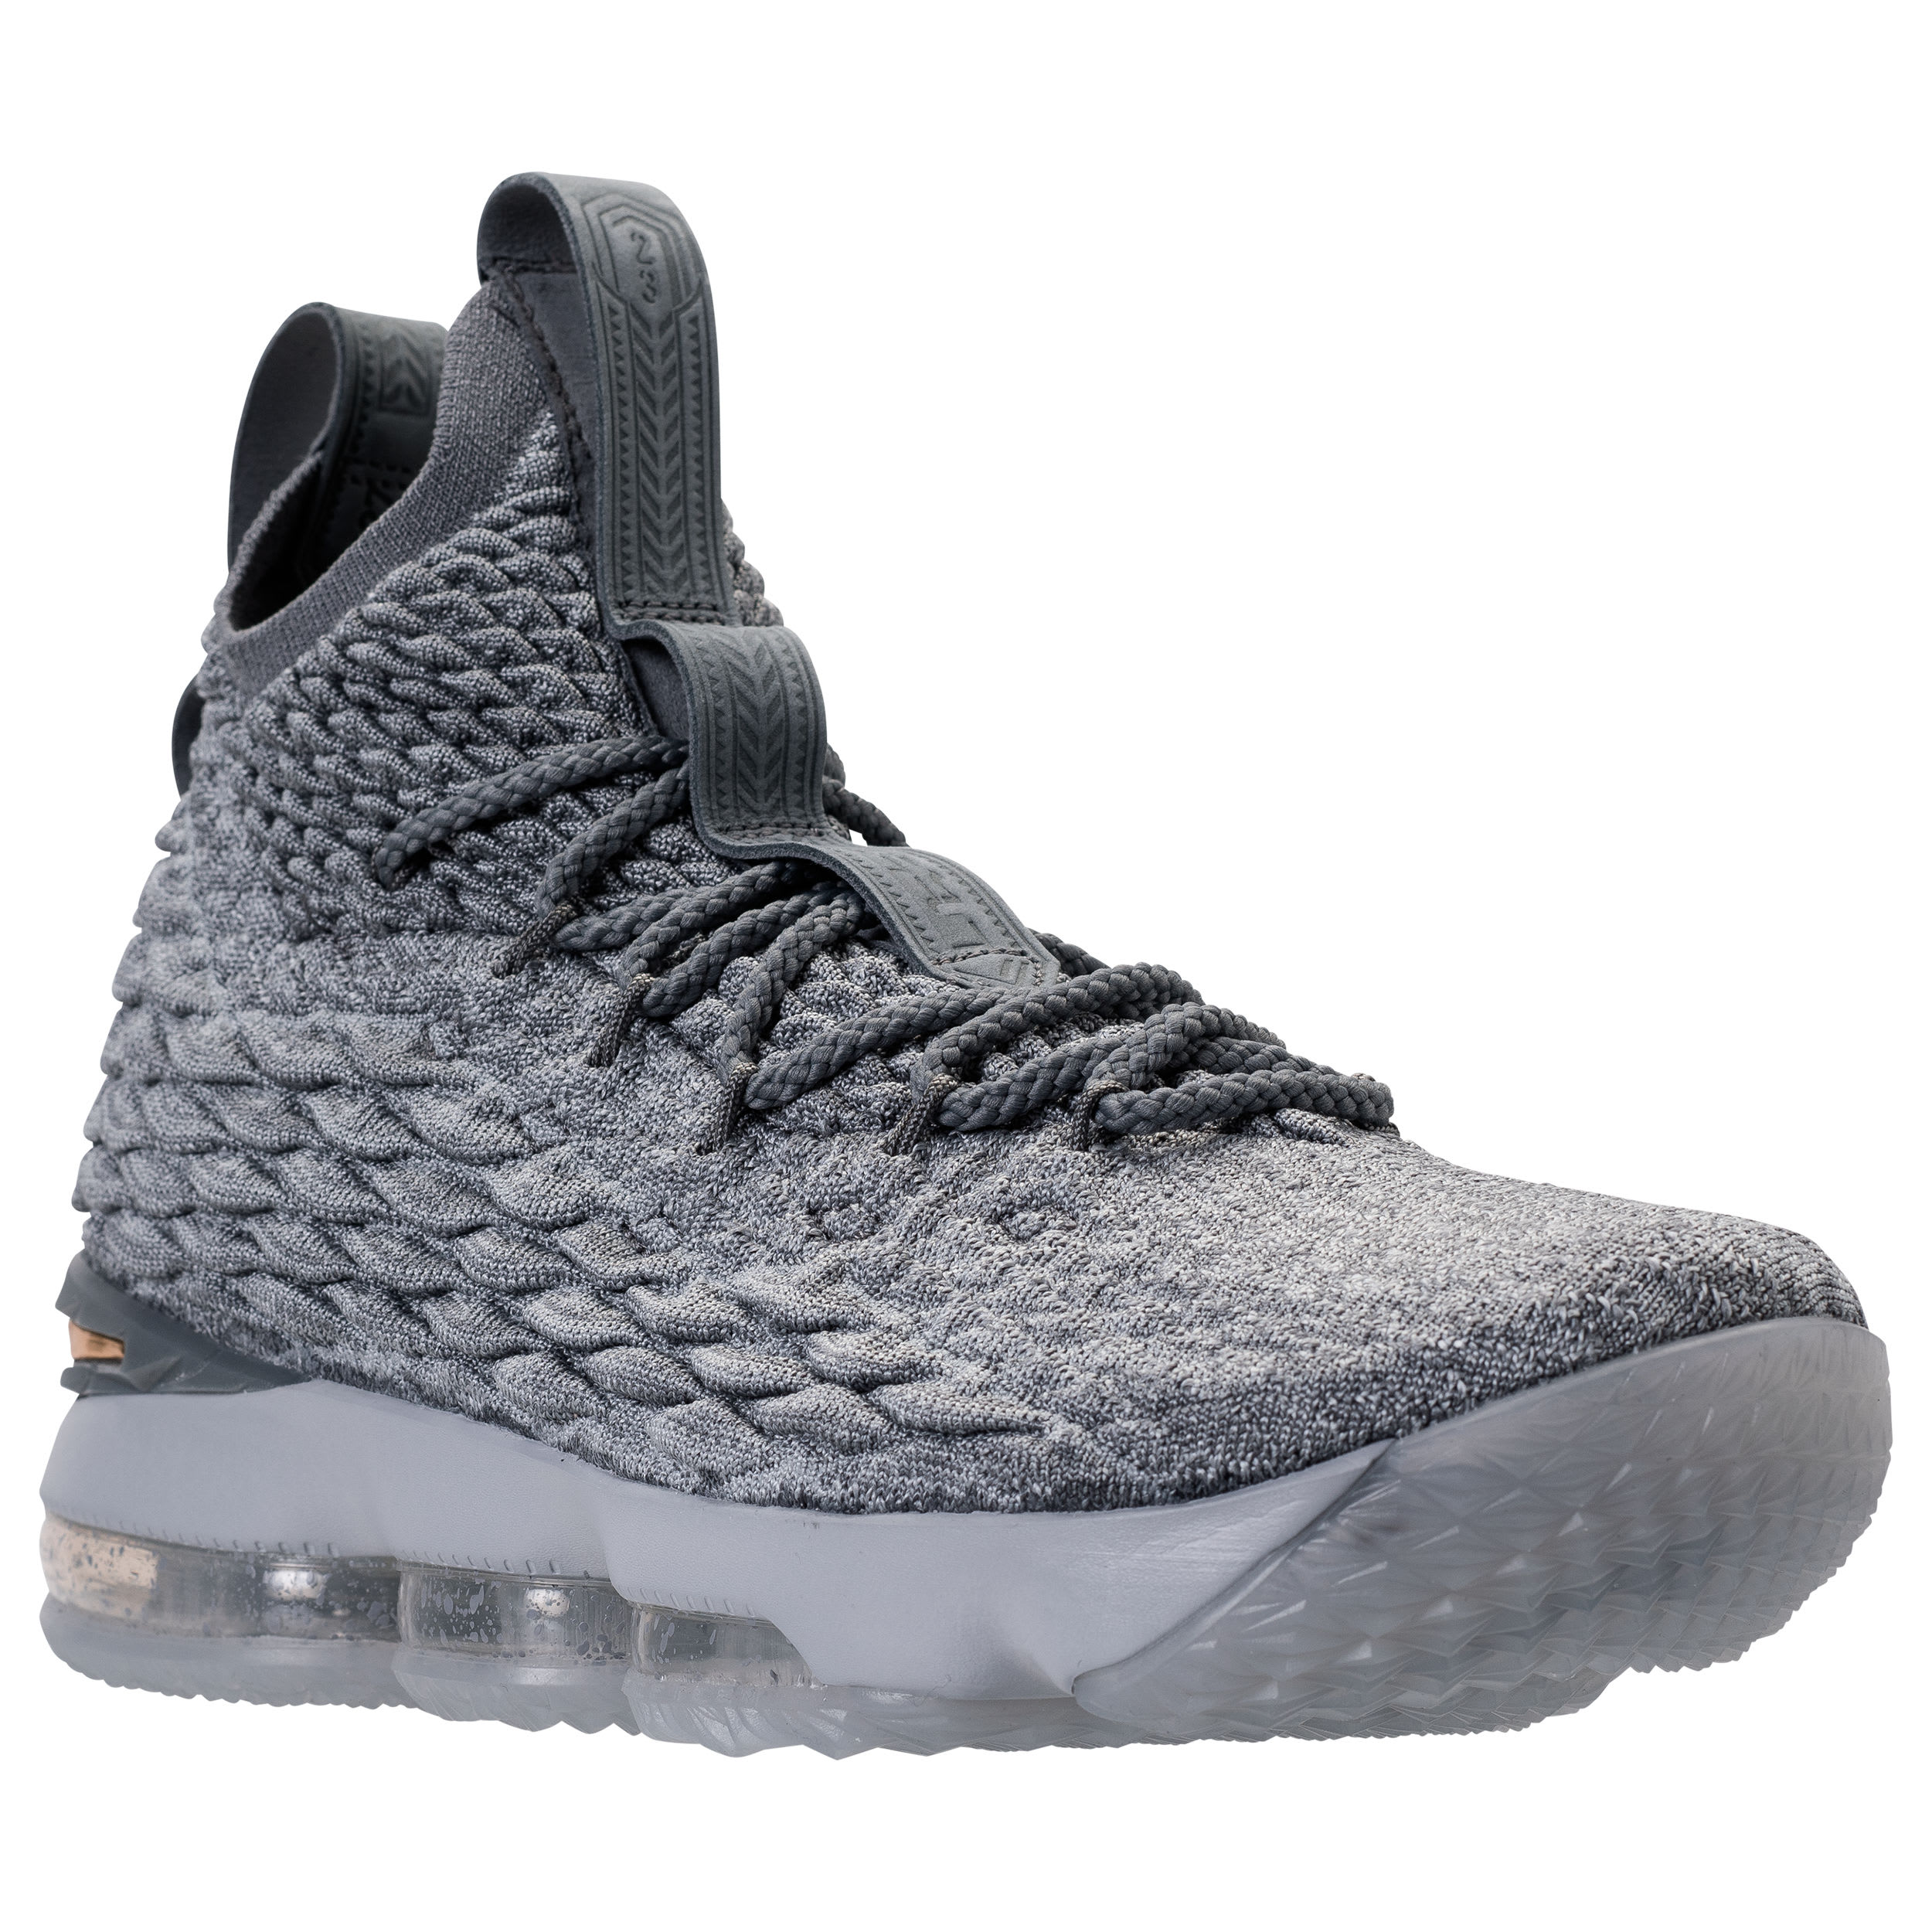 Nike LeBron 15 Grey Gold Release Date 897648-005 | Sole Collector